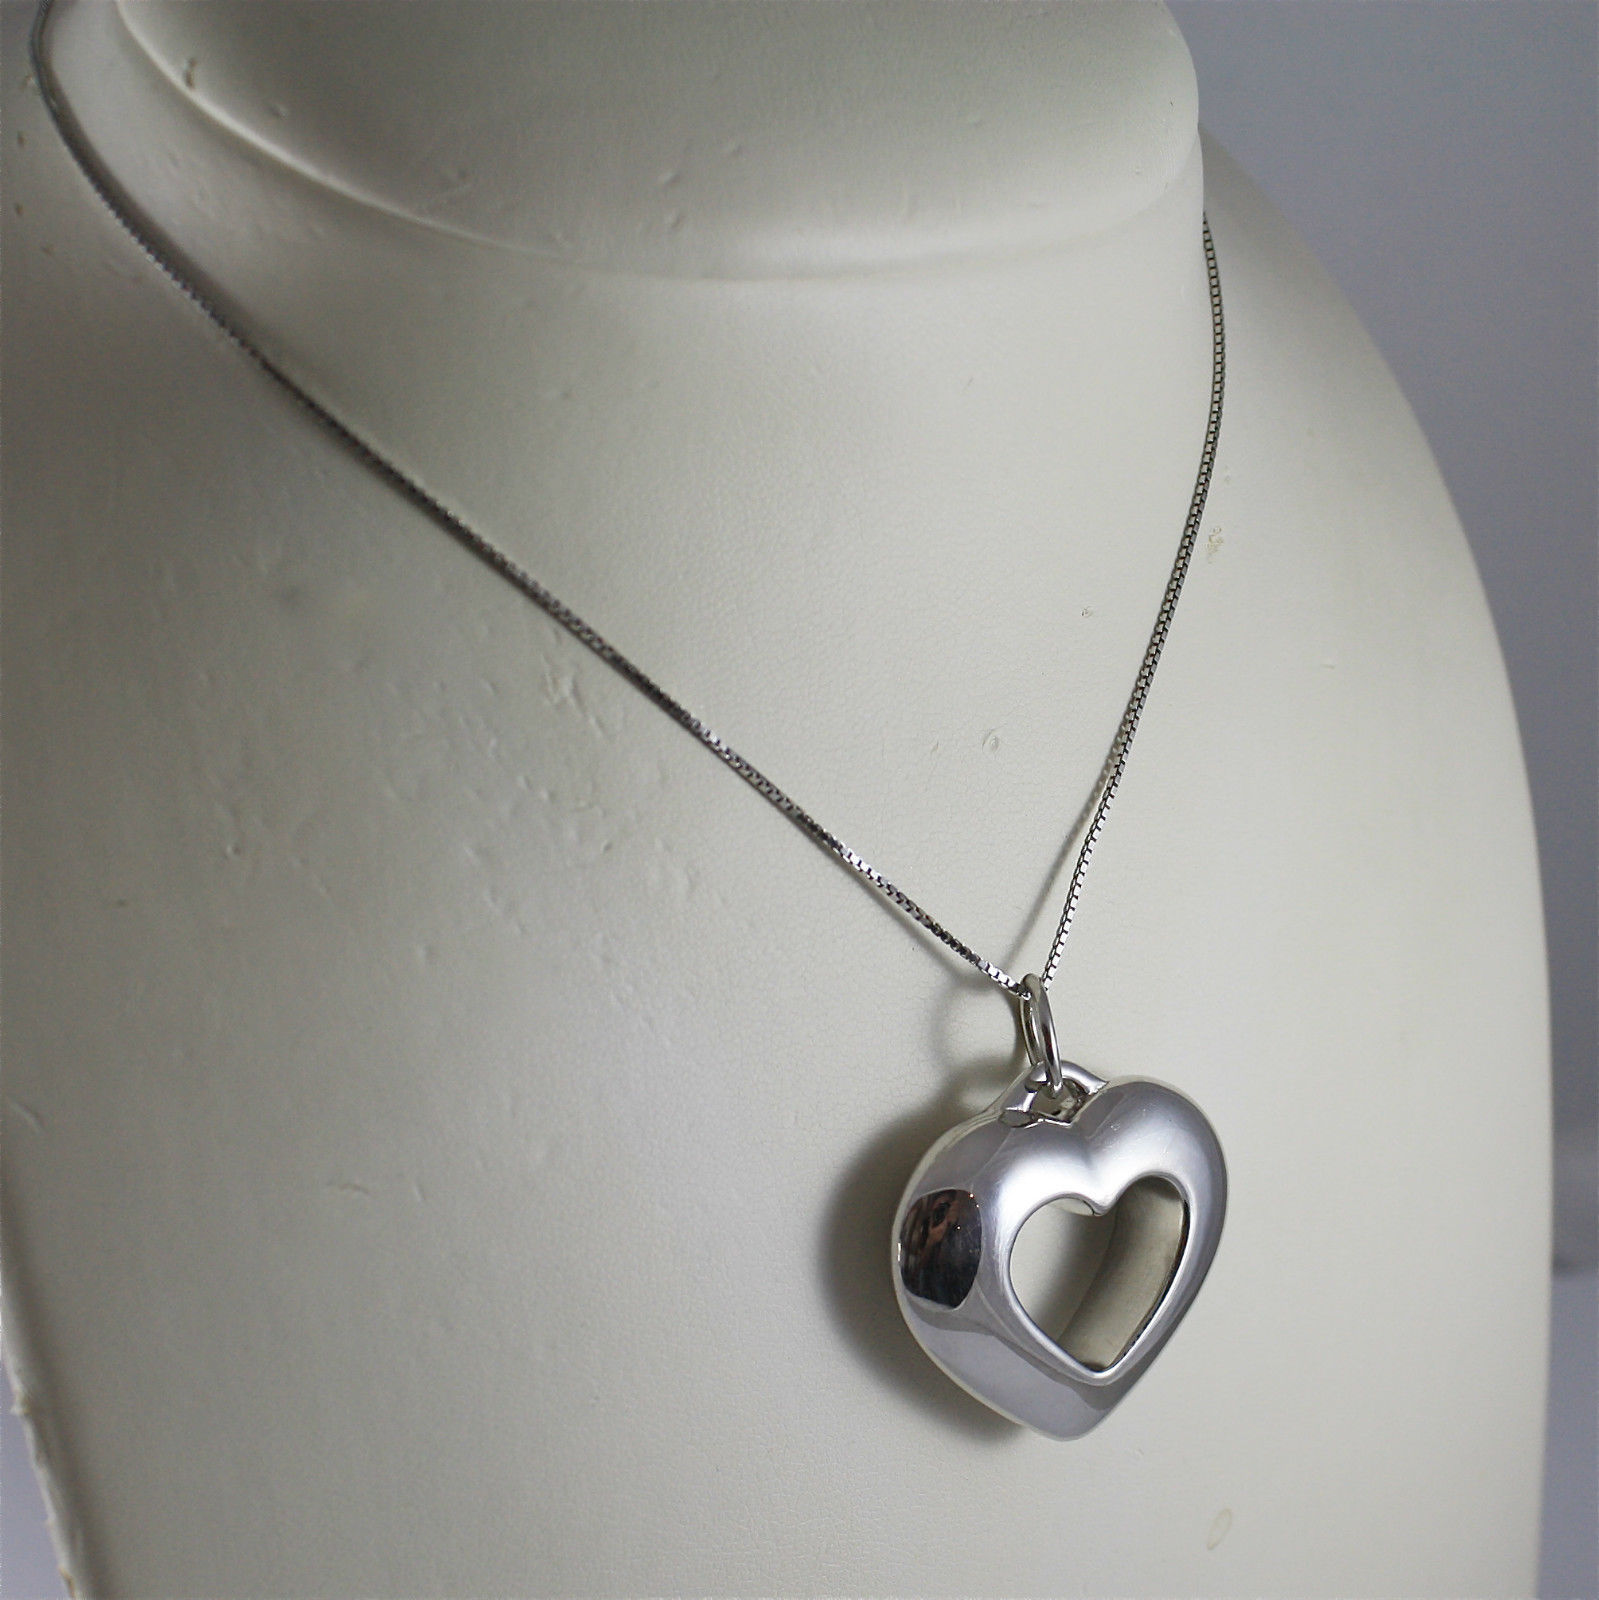 .925 RHODIUM SILVER NECKLACE, HEART PENDANT.